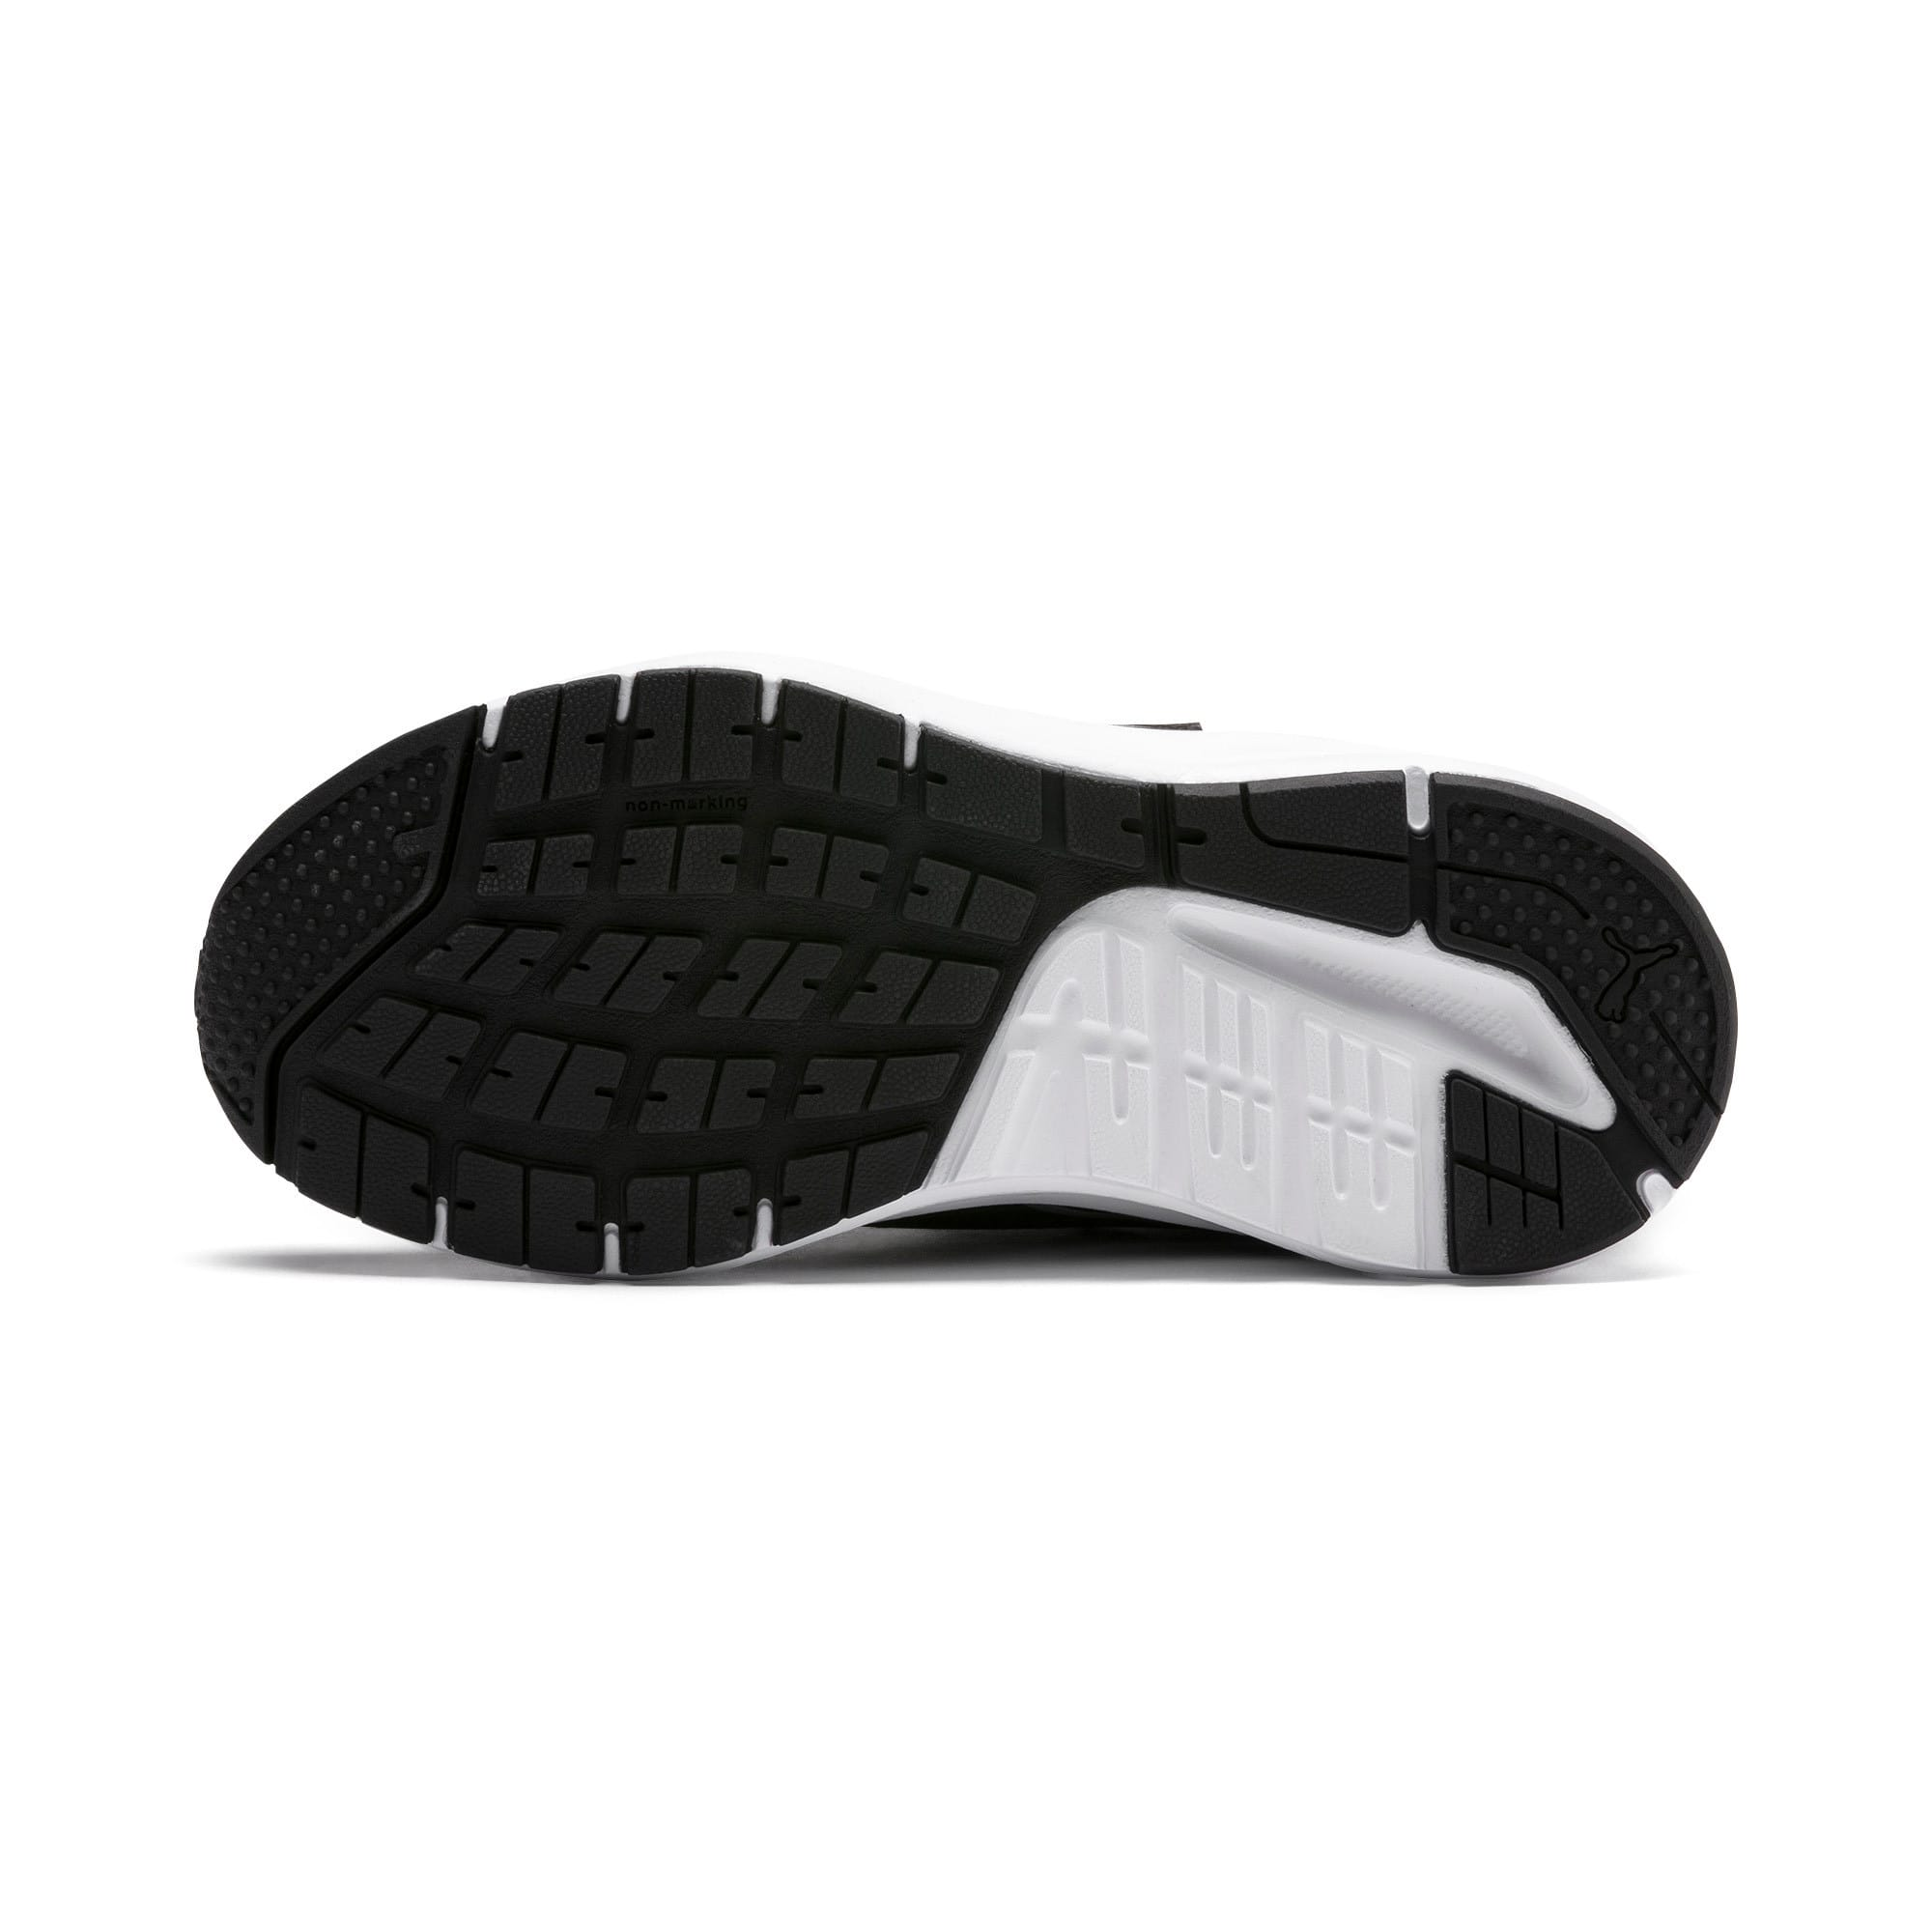 Thumbnail 4 of Pure Jogger SL Kids' Trainers, Puma Black-Puma Silver-White, medium-IND